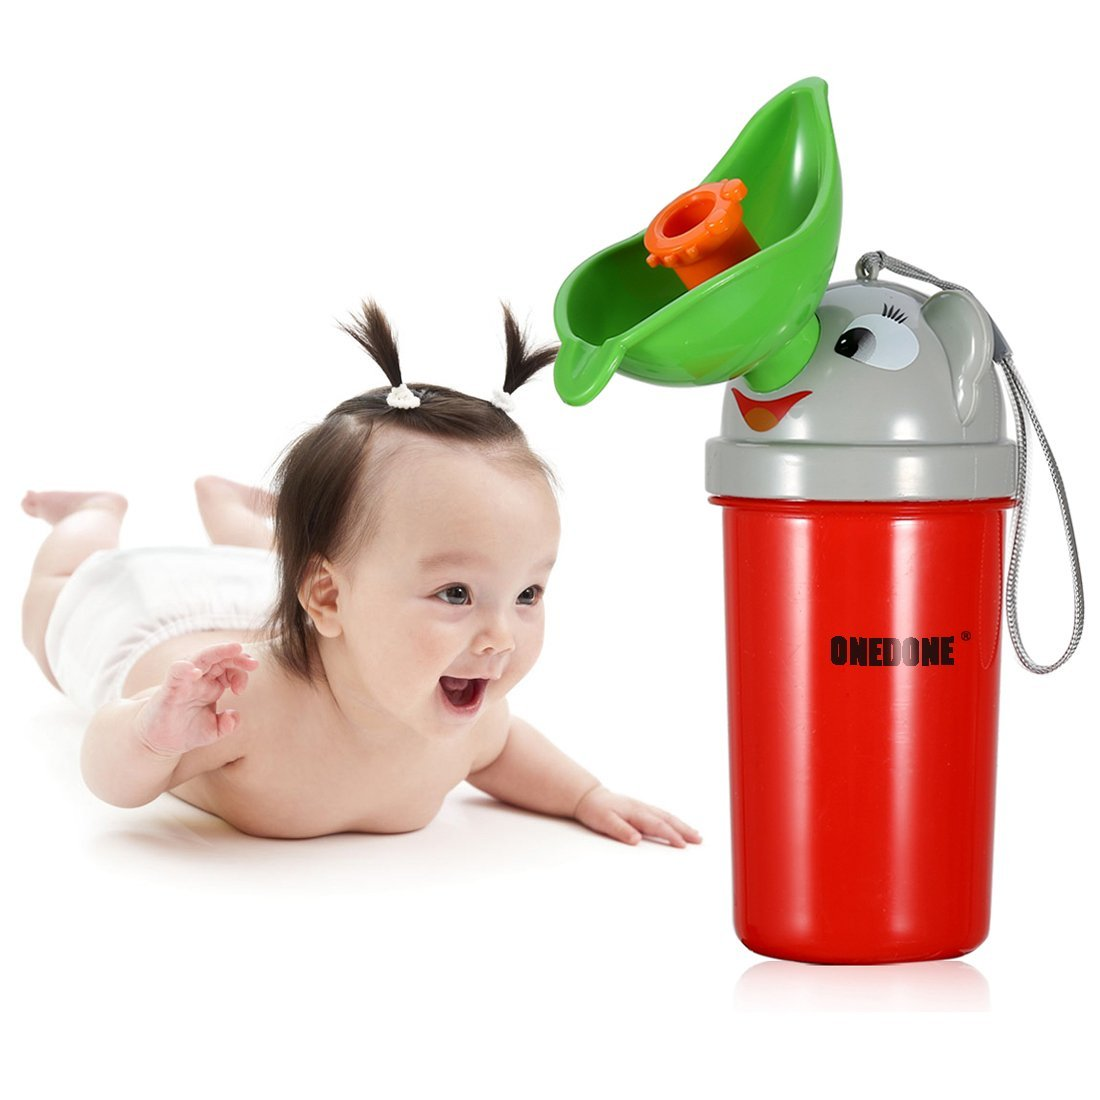 ONEDONE Portable Baby ChildPottyUrinal Emergency Toilet for Camping Car Travel and Kid Potty Pee Training (Girl)